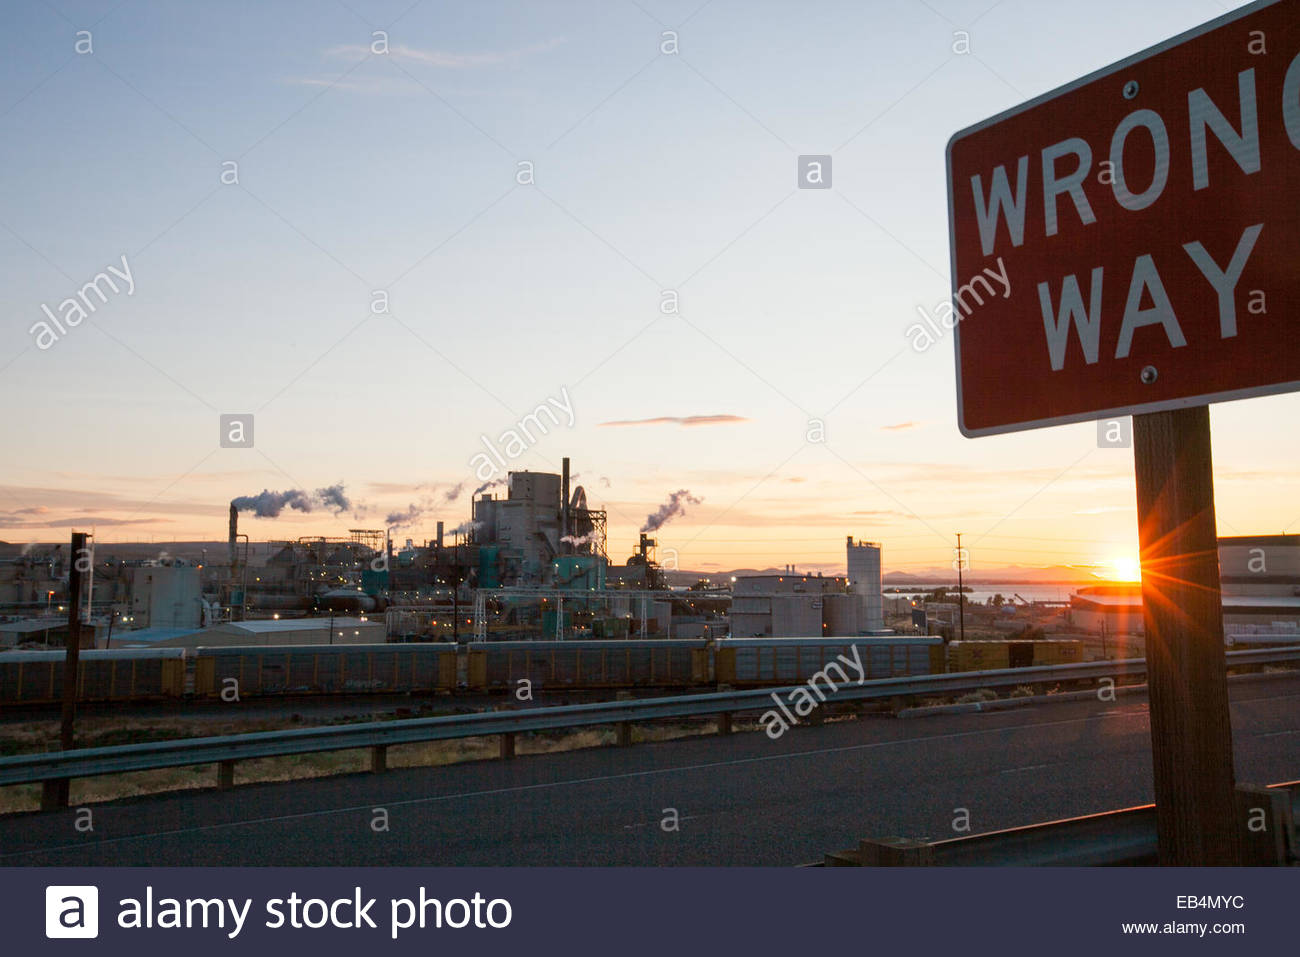 A Wrong Way sign on a road near a paper manufacturing and packing plant. - Stock Image